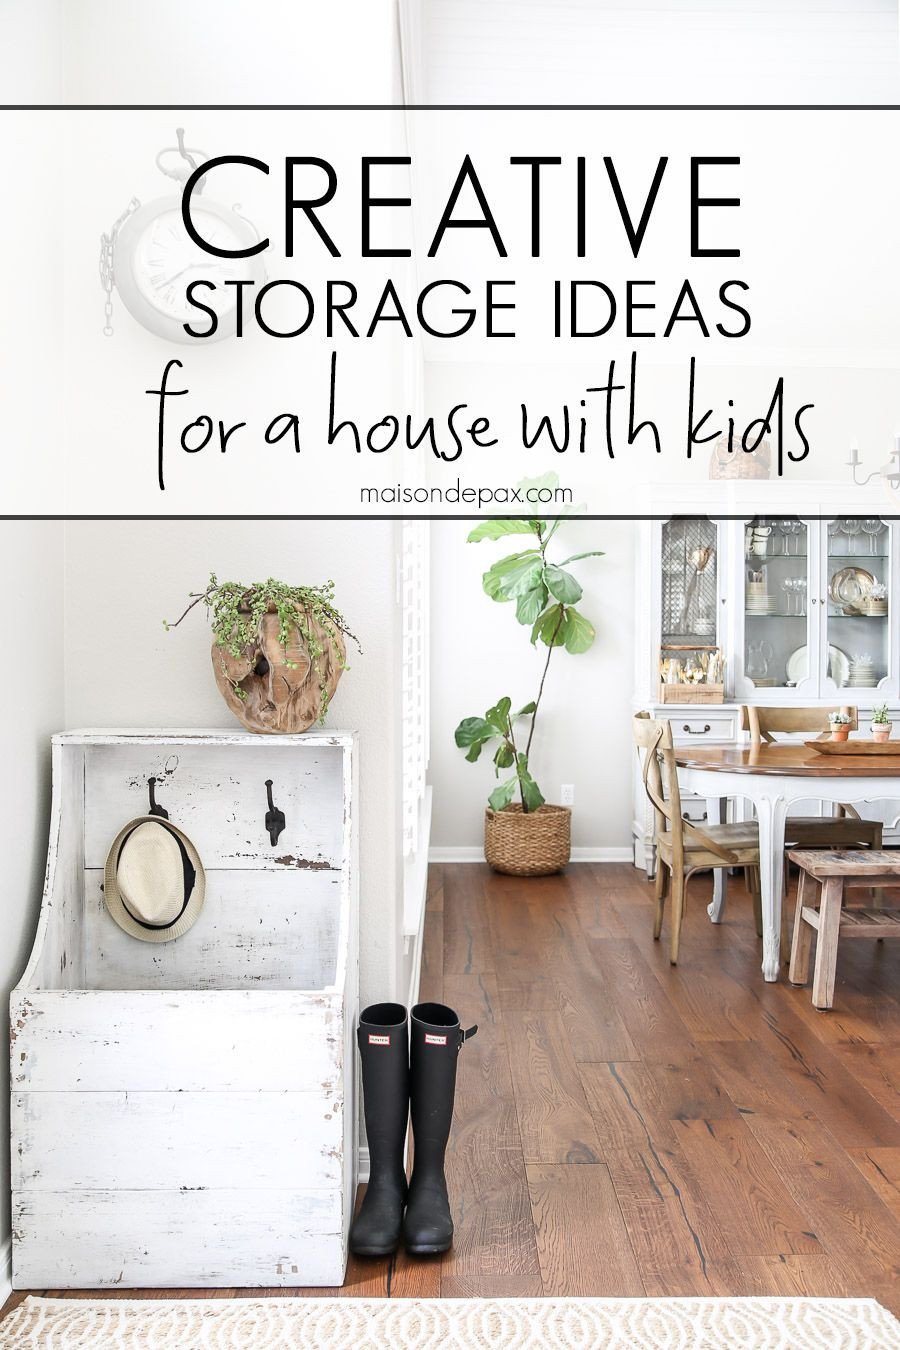 Organization Tips for Bedroom Best Of 10 Kids Storage Ideas organizing Tips for A House with Kids